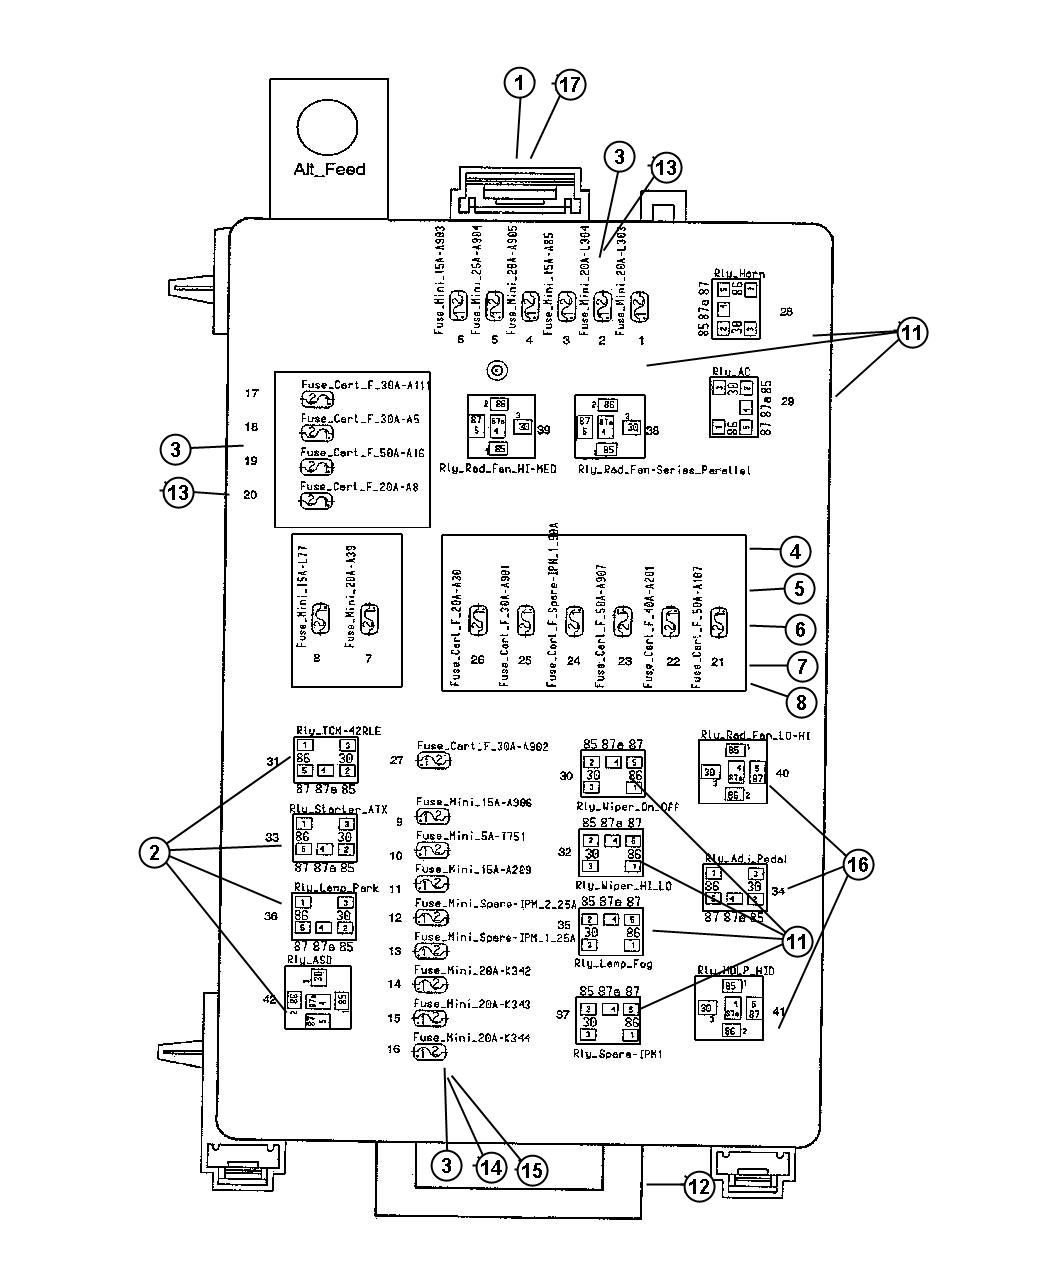 collection high mopar mini starter wiring pictures wire diagram 2006 chrysler 300 power distribution center relays and fuses under 2006 chrysler 300 power distribution center relays and fuses under